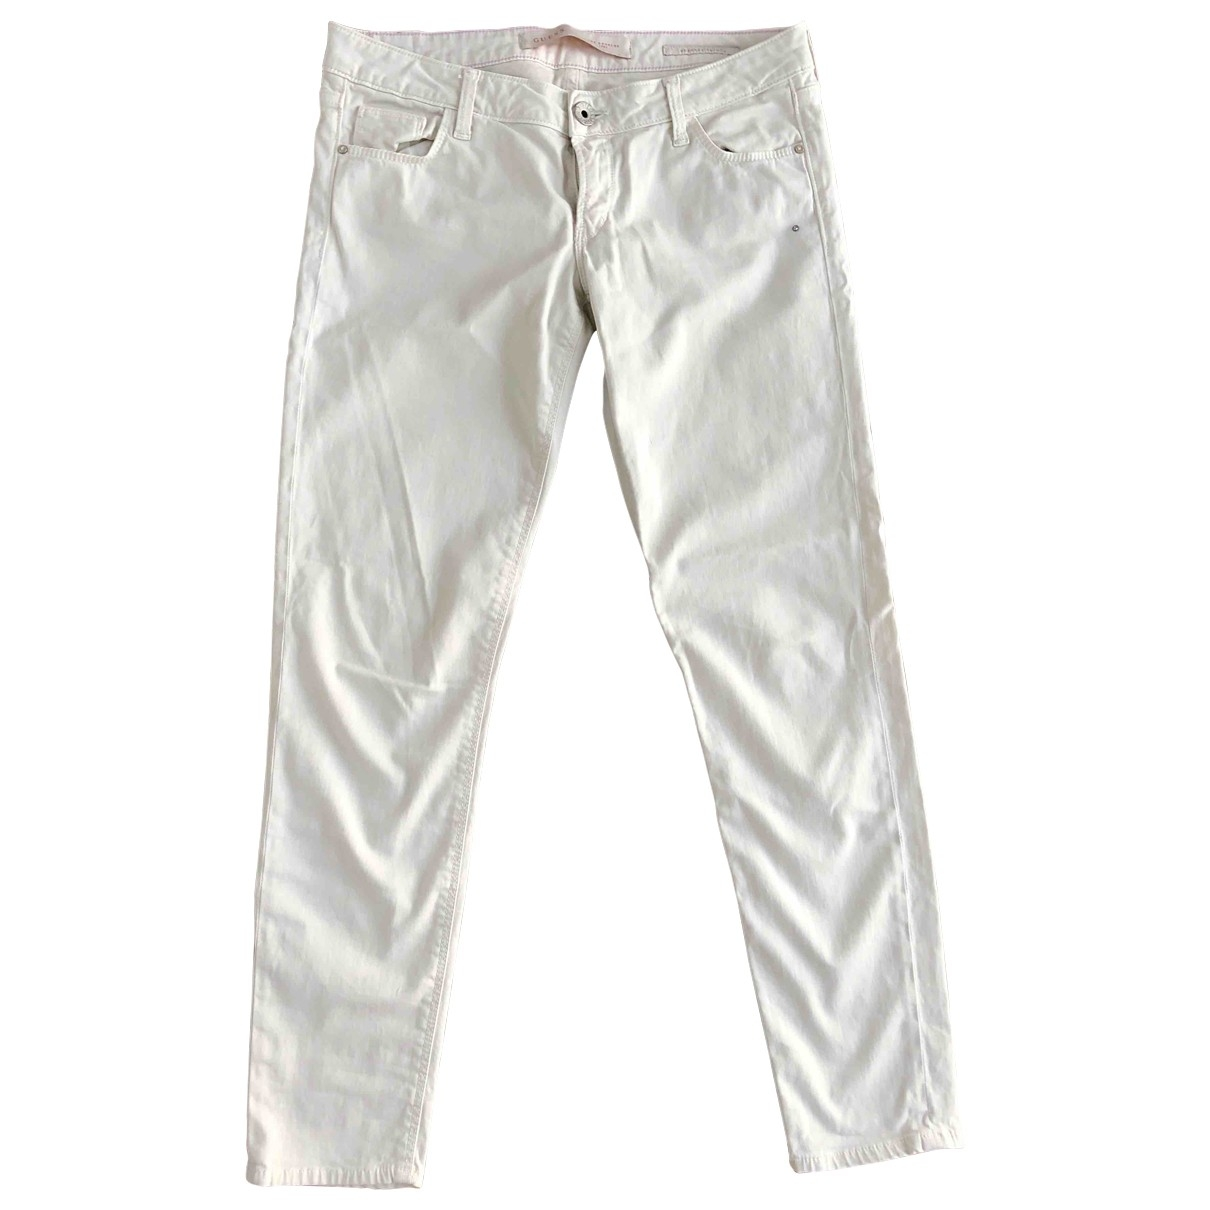 Guess \N White Cotton - elasthane Jeans for Women 30 US